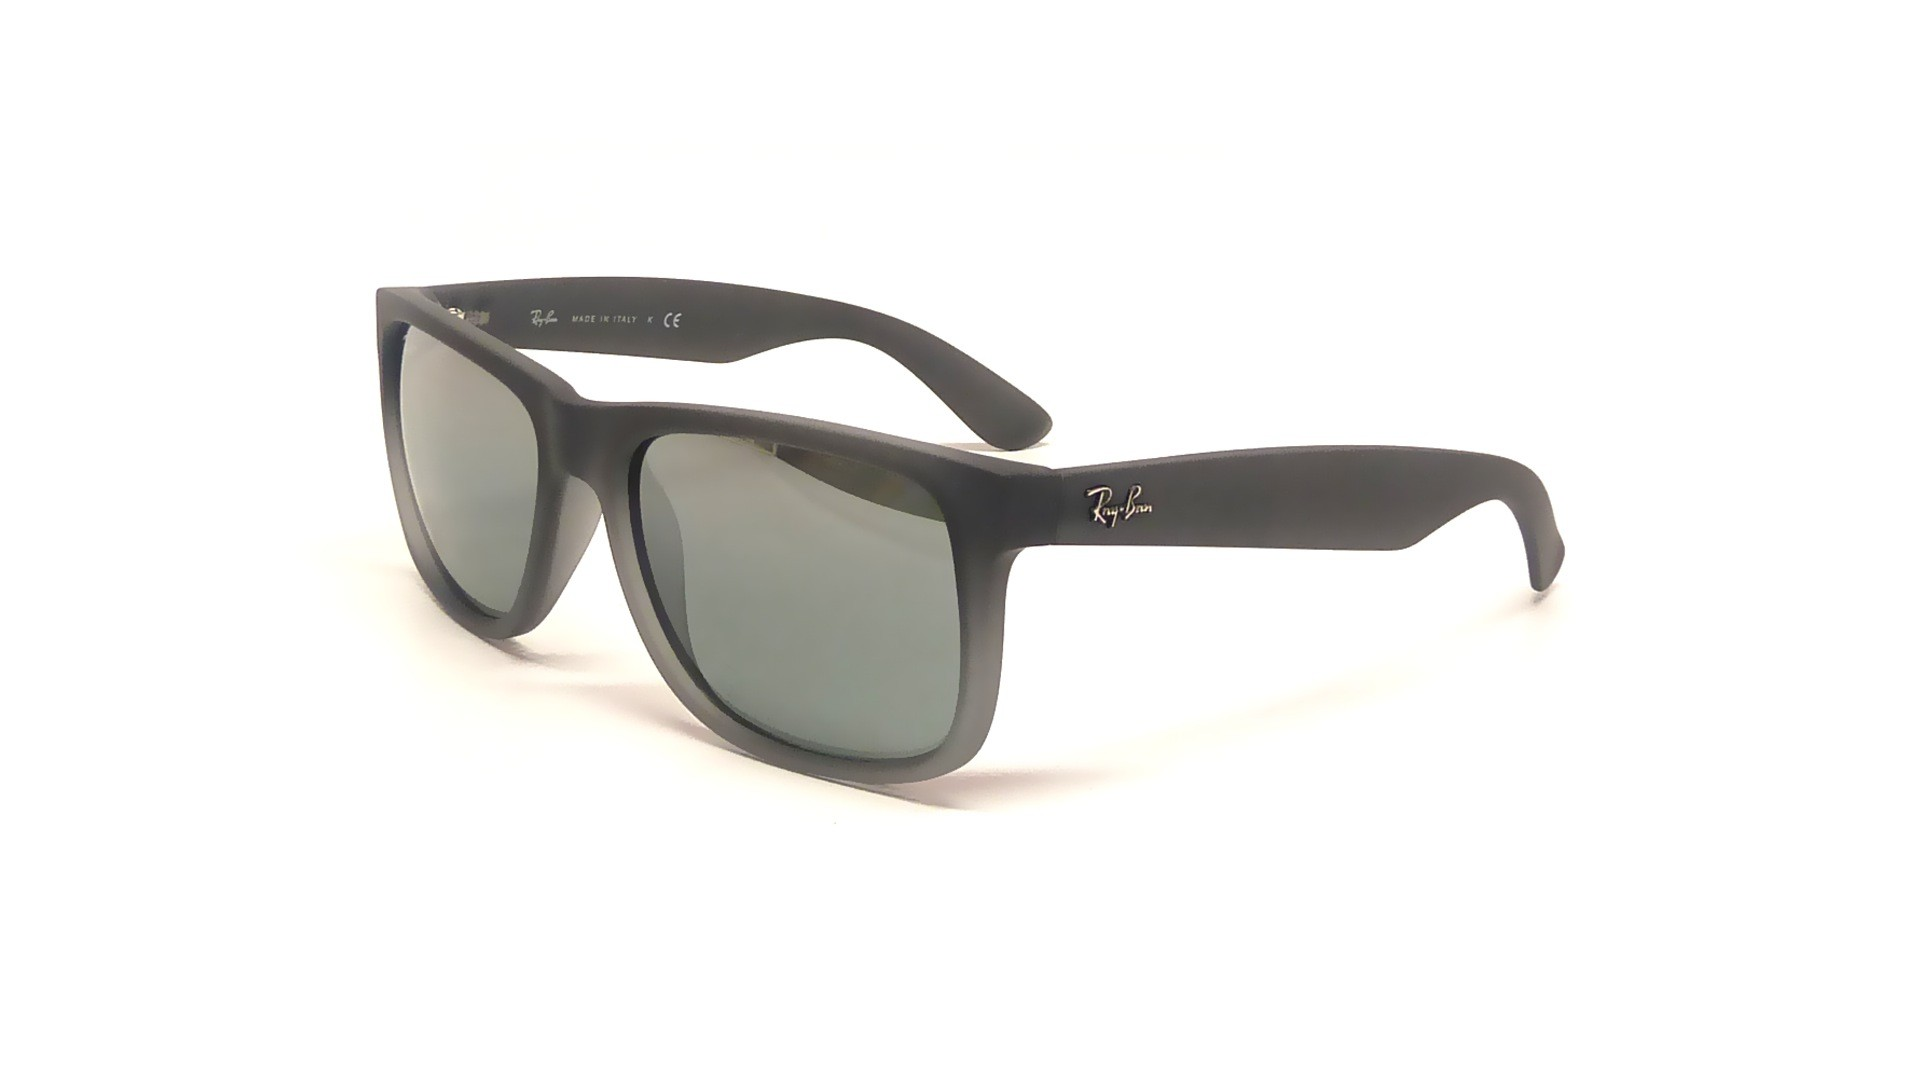 102a5c69b973 Ray-Ban Justin Grey RB4165 852 88 54-16